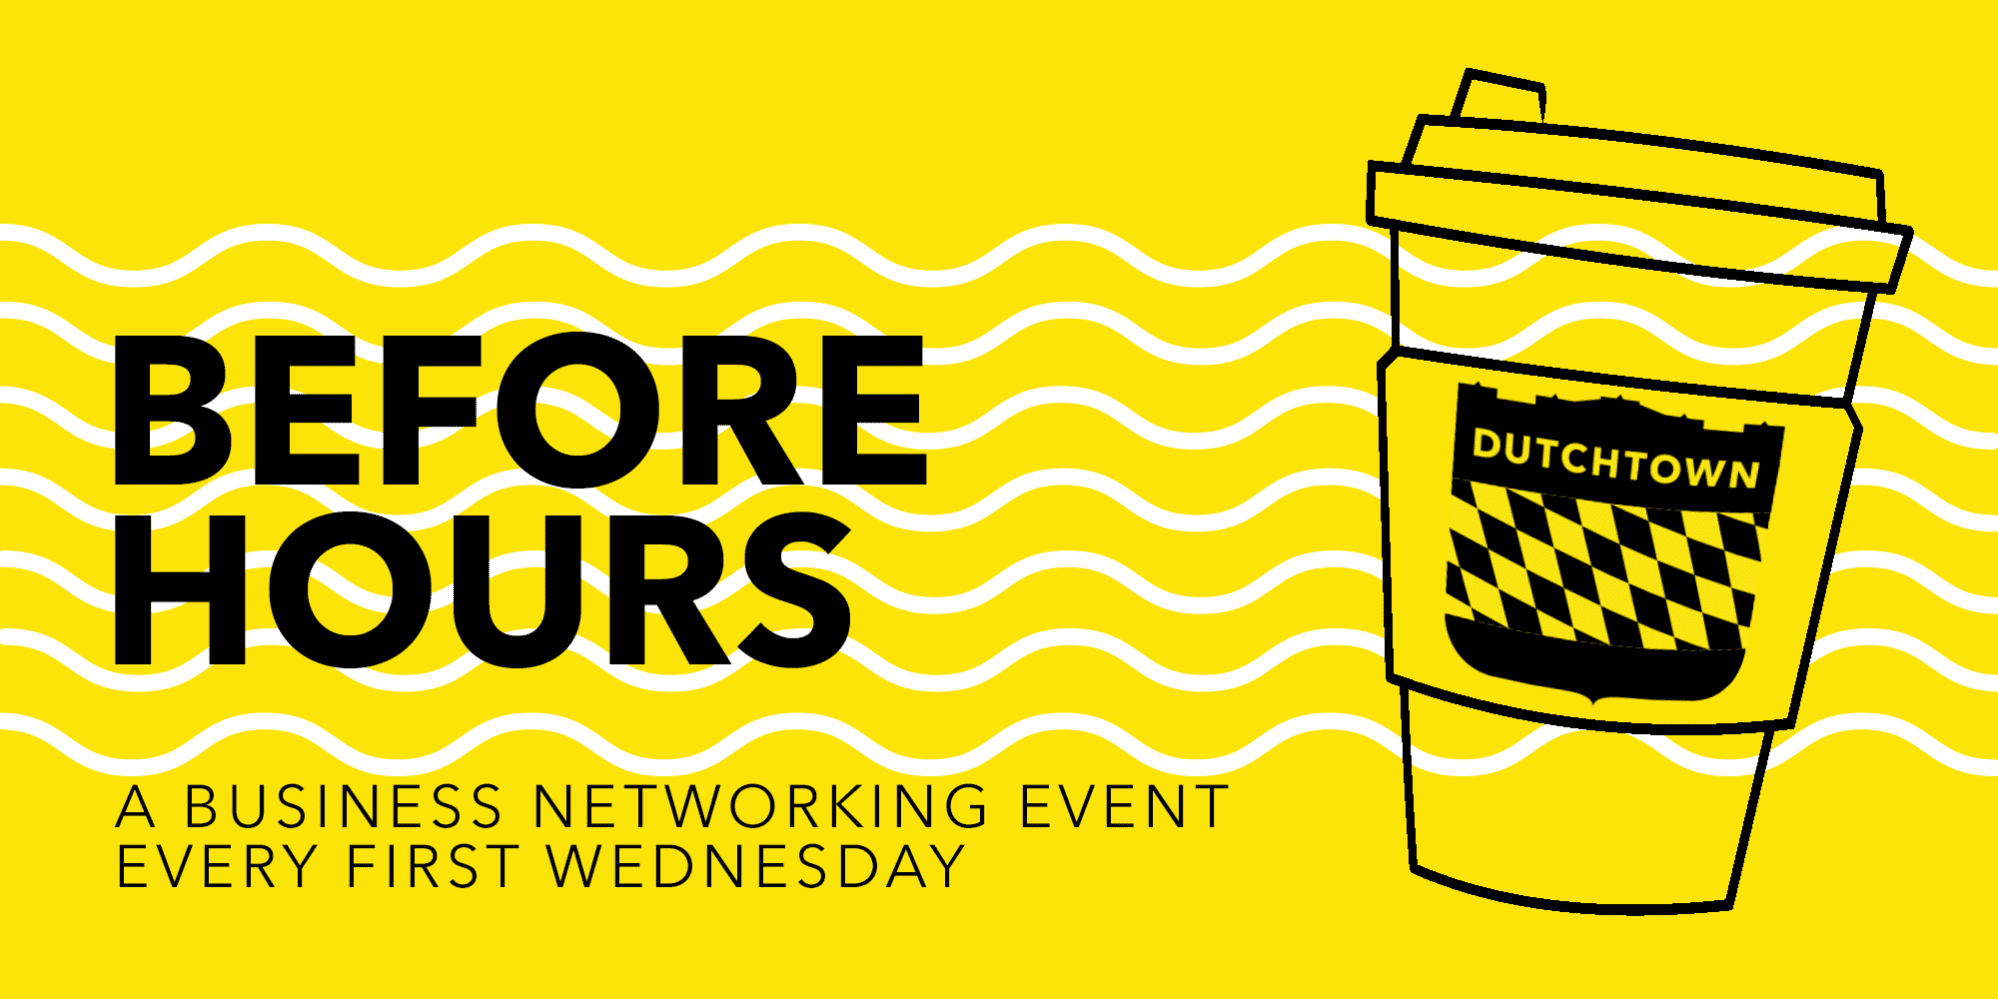 Before Hours: A business networking event every first Wednesday.